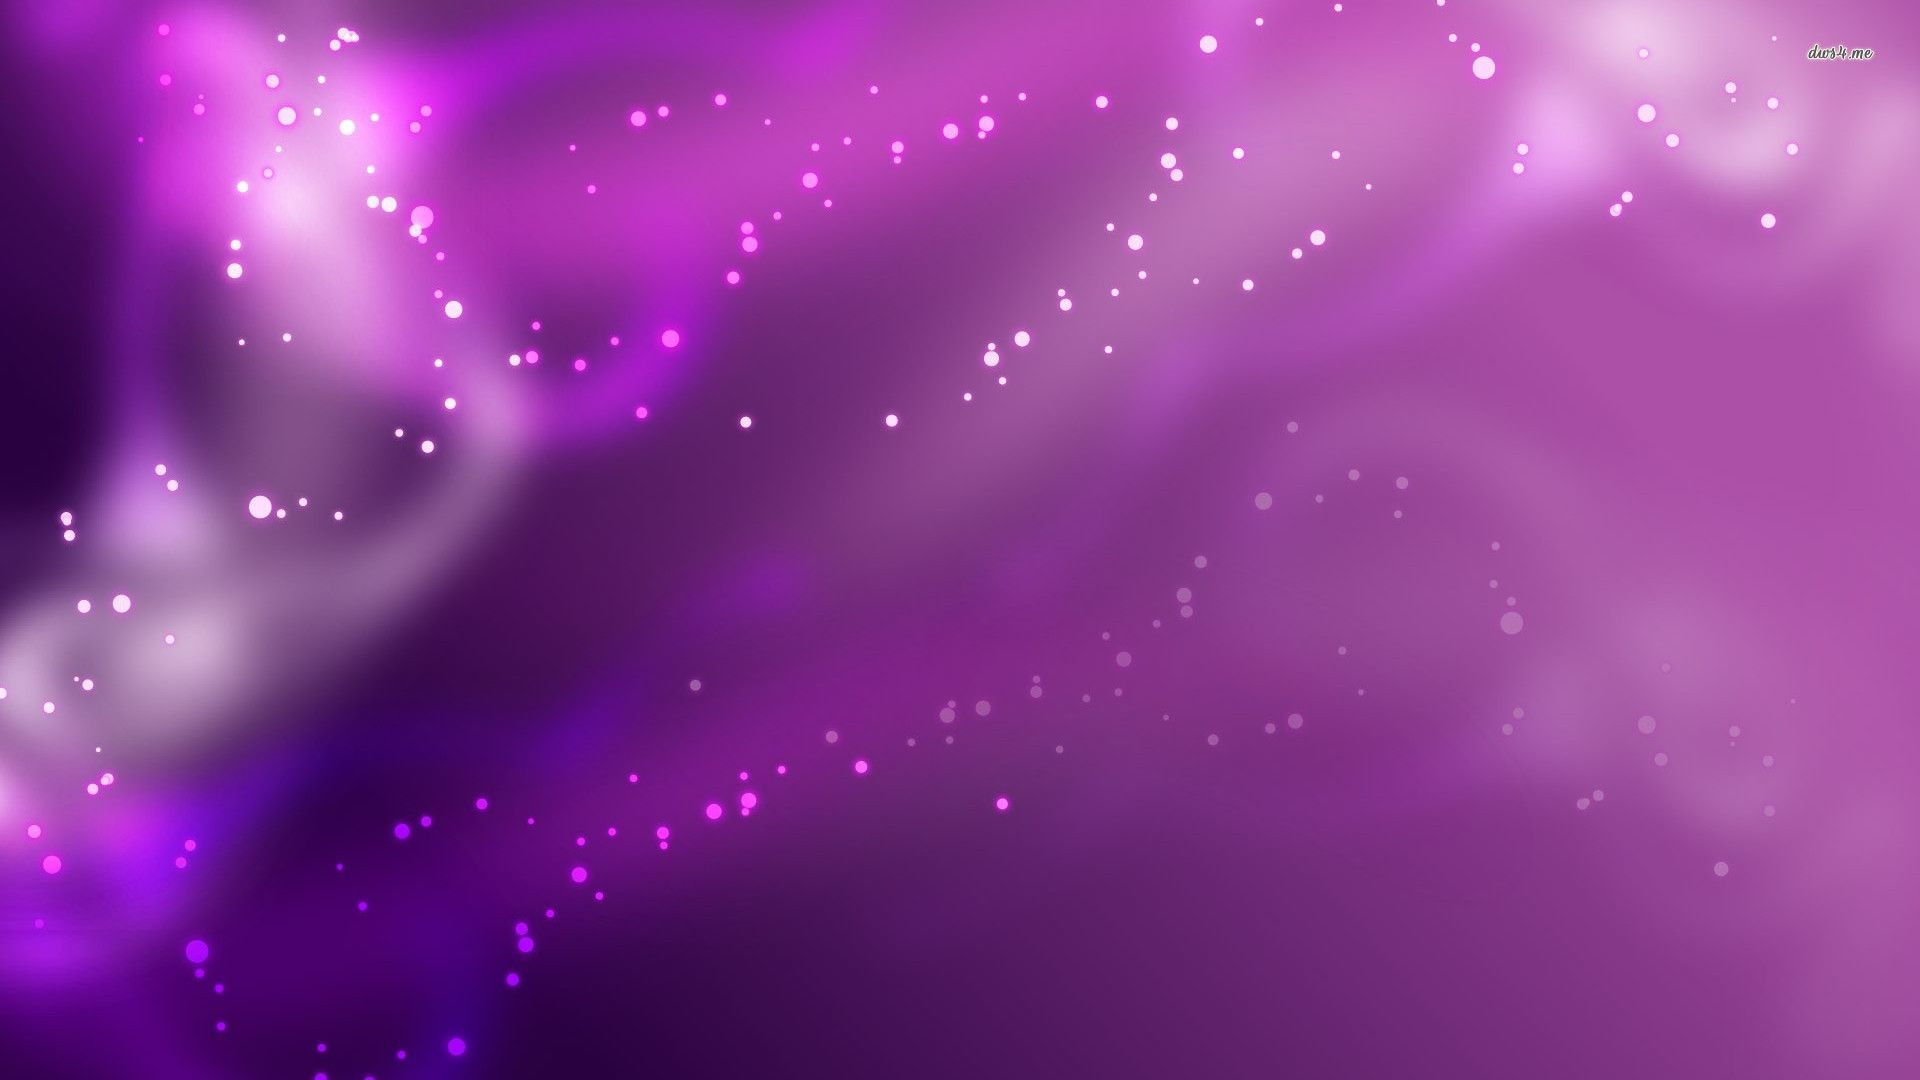 1920x1080 Abstract Star In Blue And Lilac ctor Background For